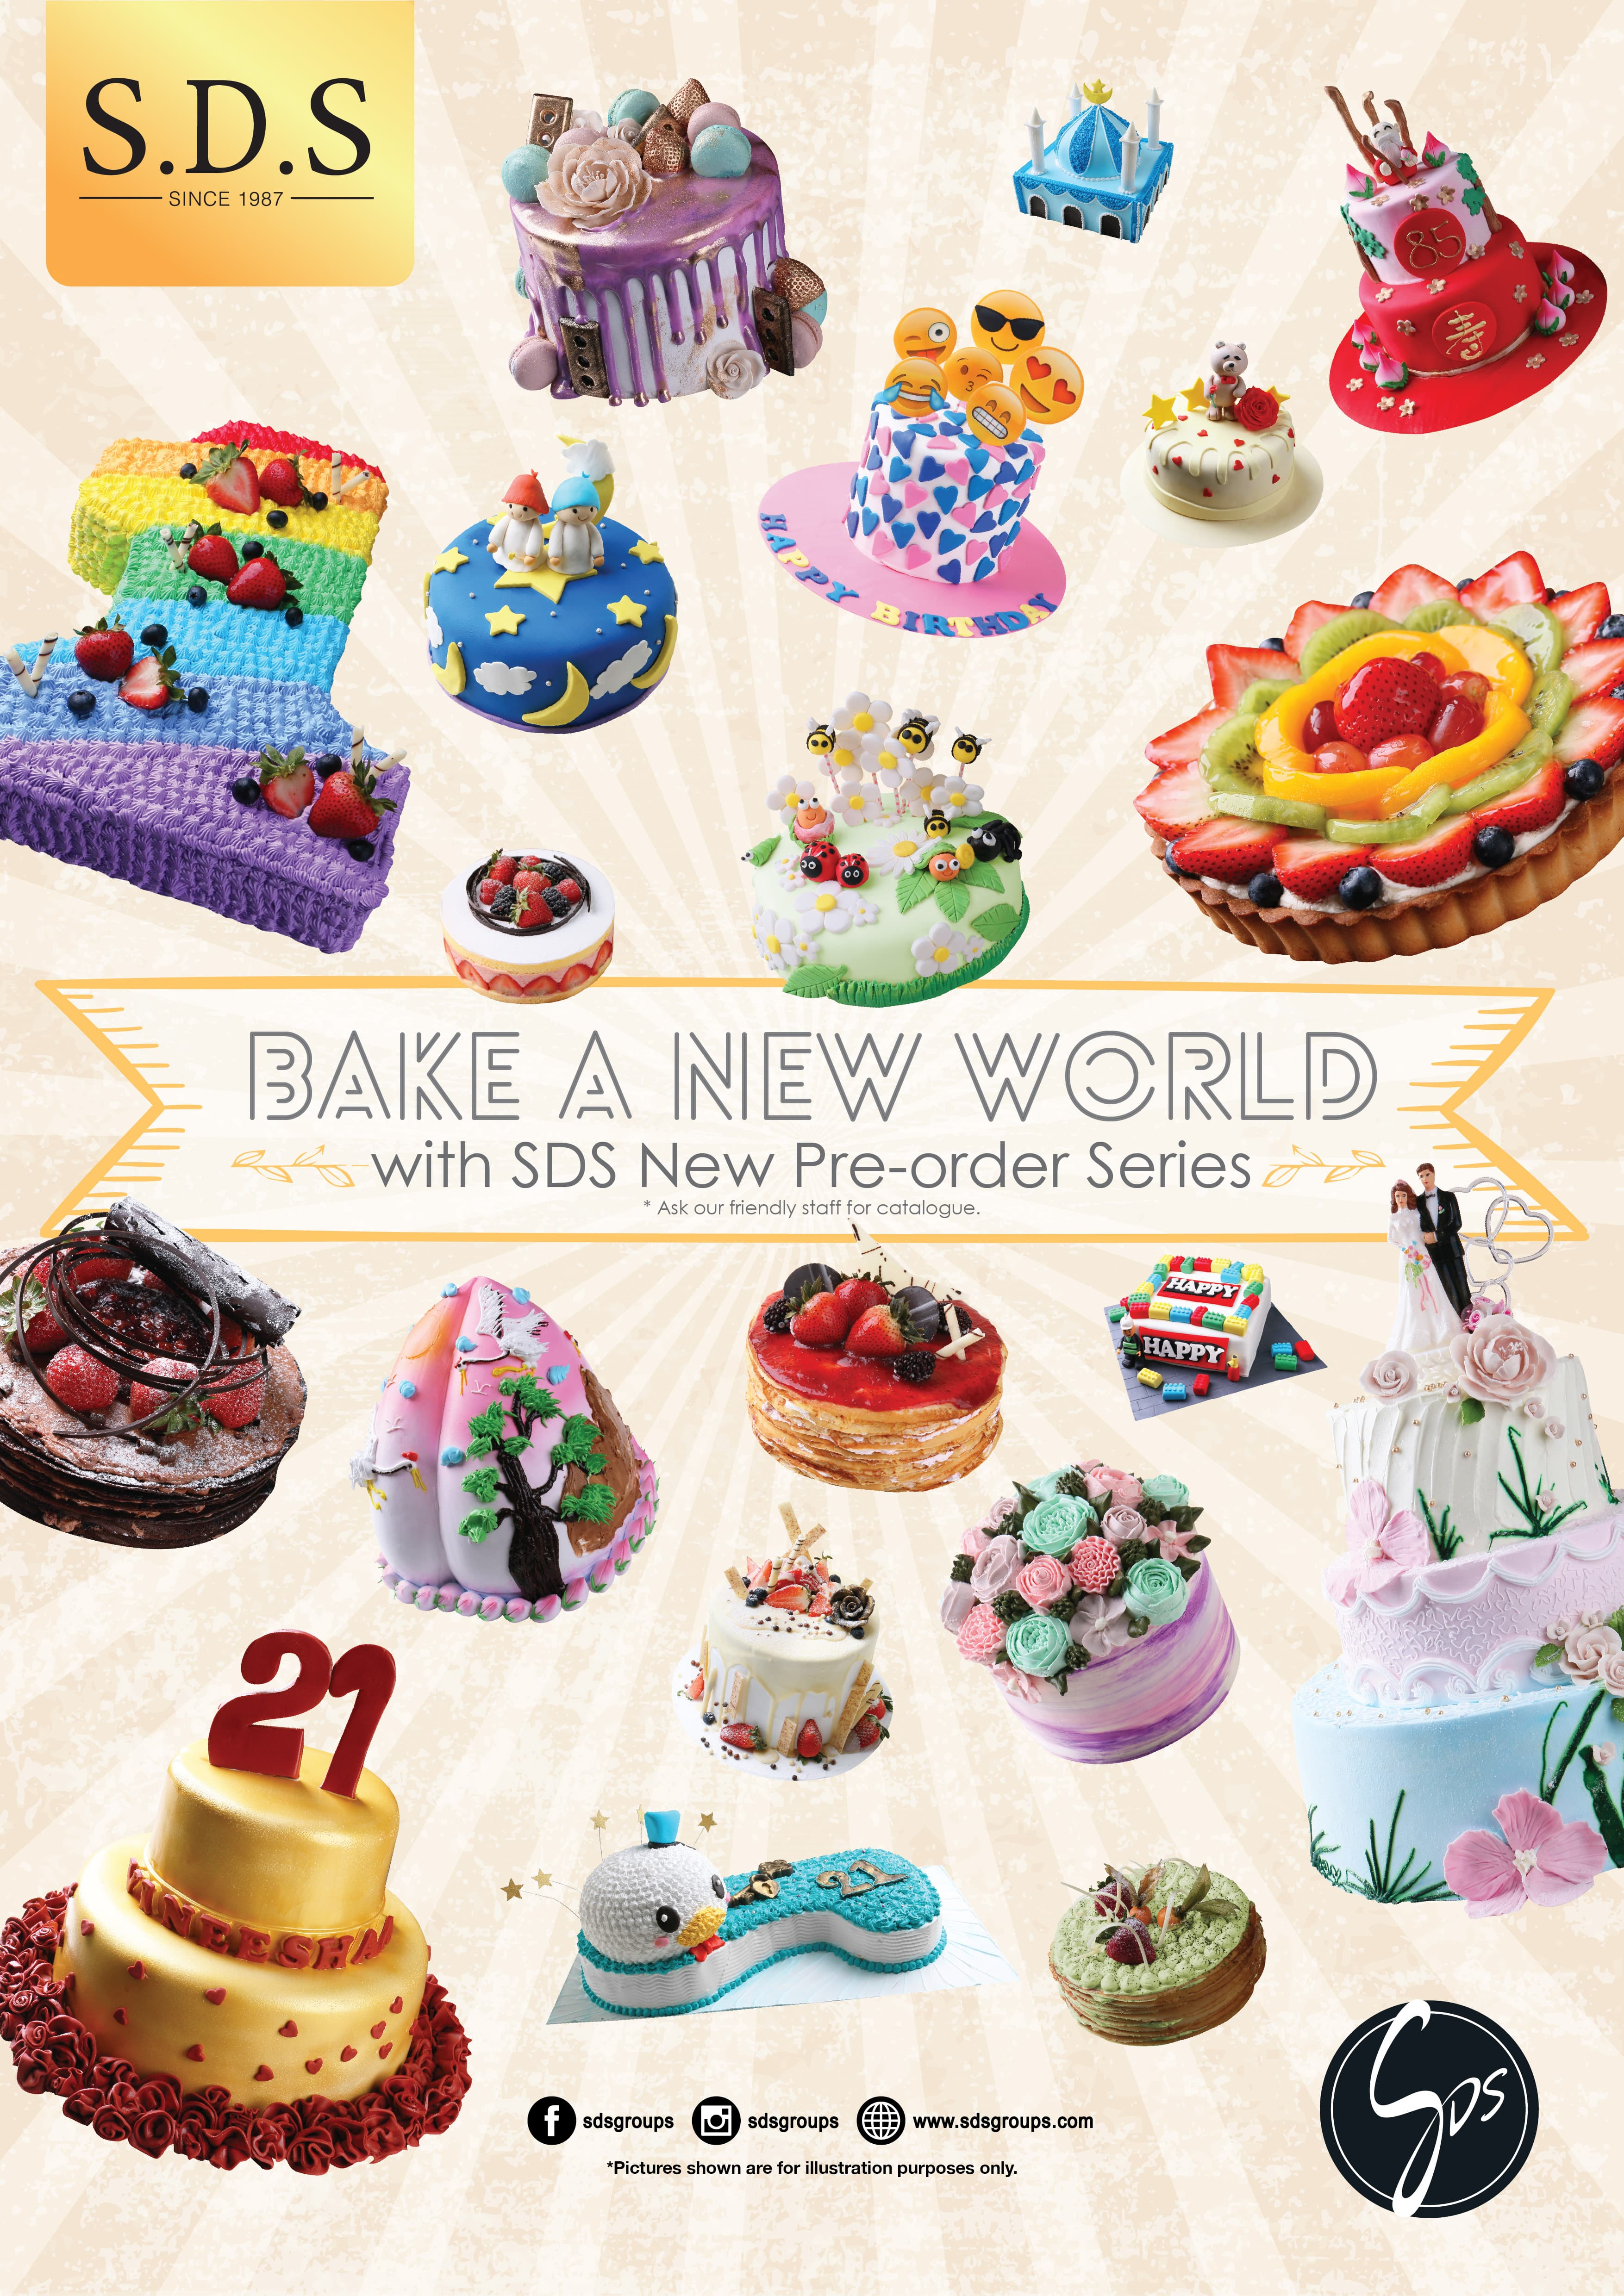 SDS Brand New Pre Ordering Cake Catalogue Is Available In A Choice Of More Than 130 Types Across 15 Categories Specially Featured For Various